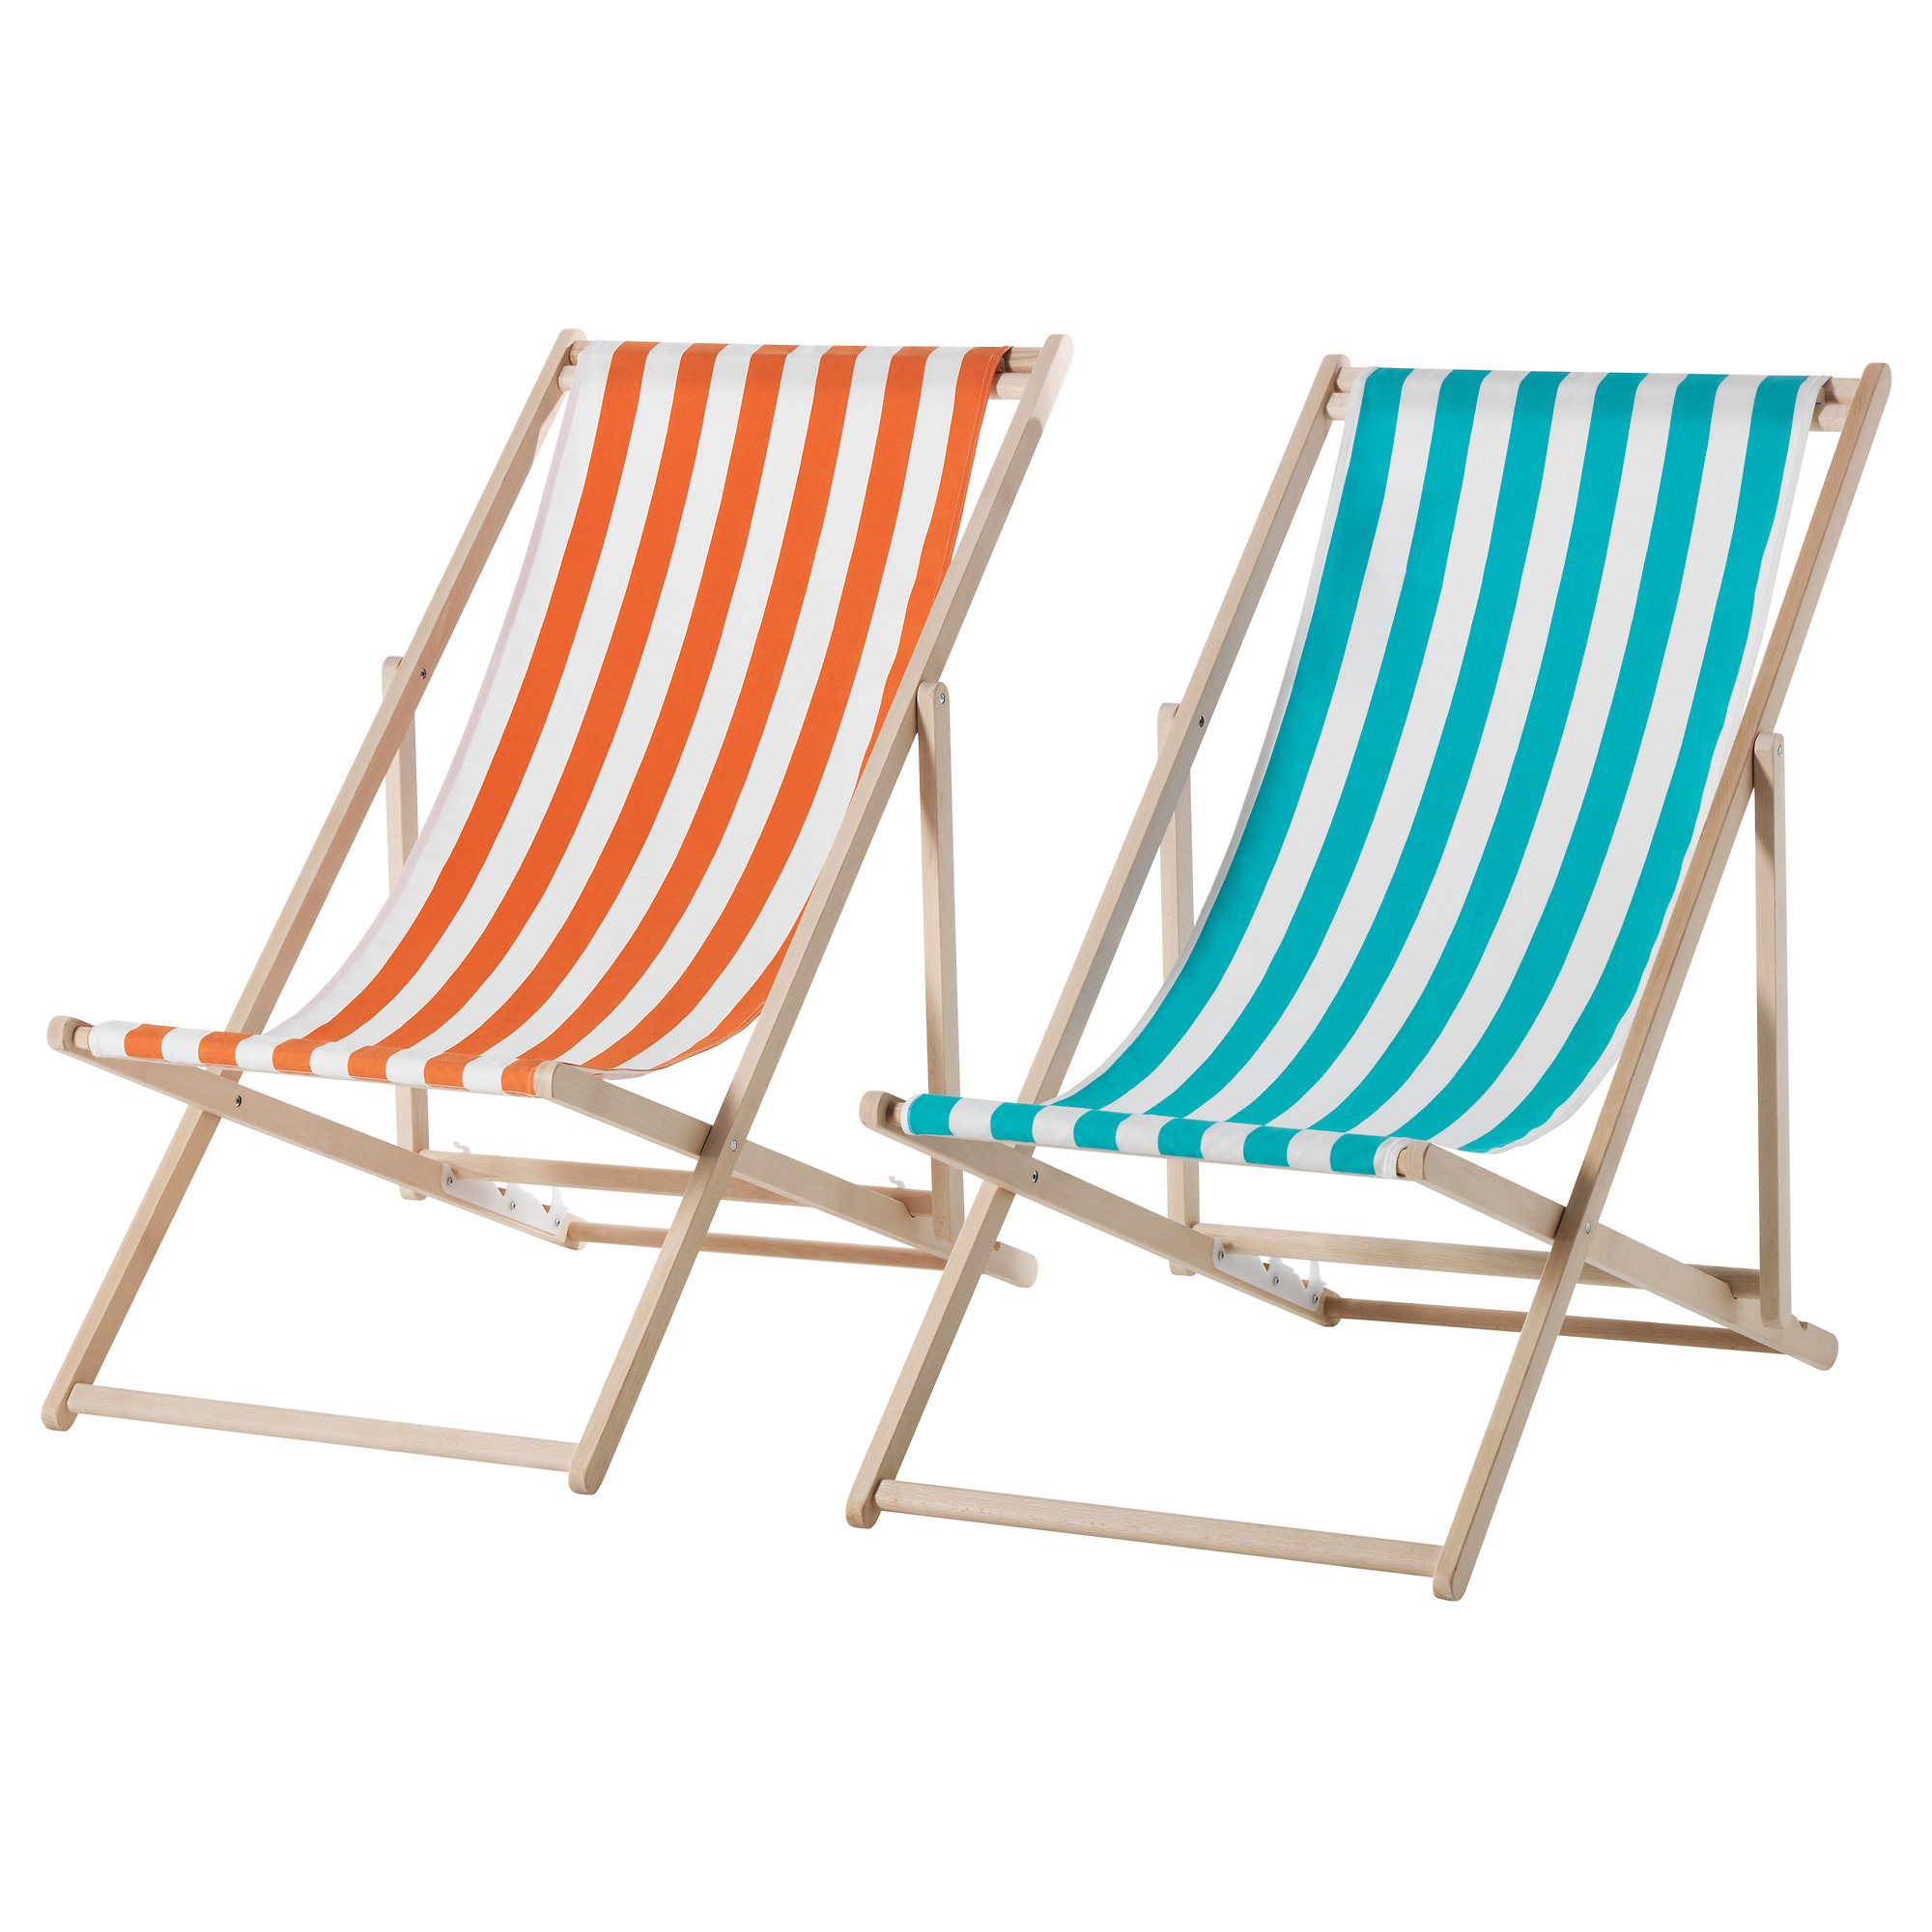 Vintage Ikea Lounge Chair MysingsÖ Beach Chair Ikea Love These Chairs They Remind